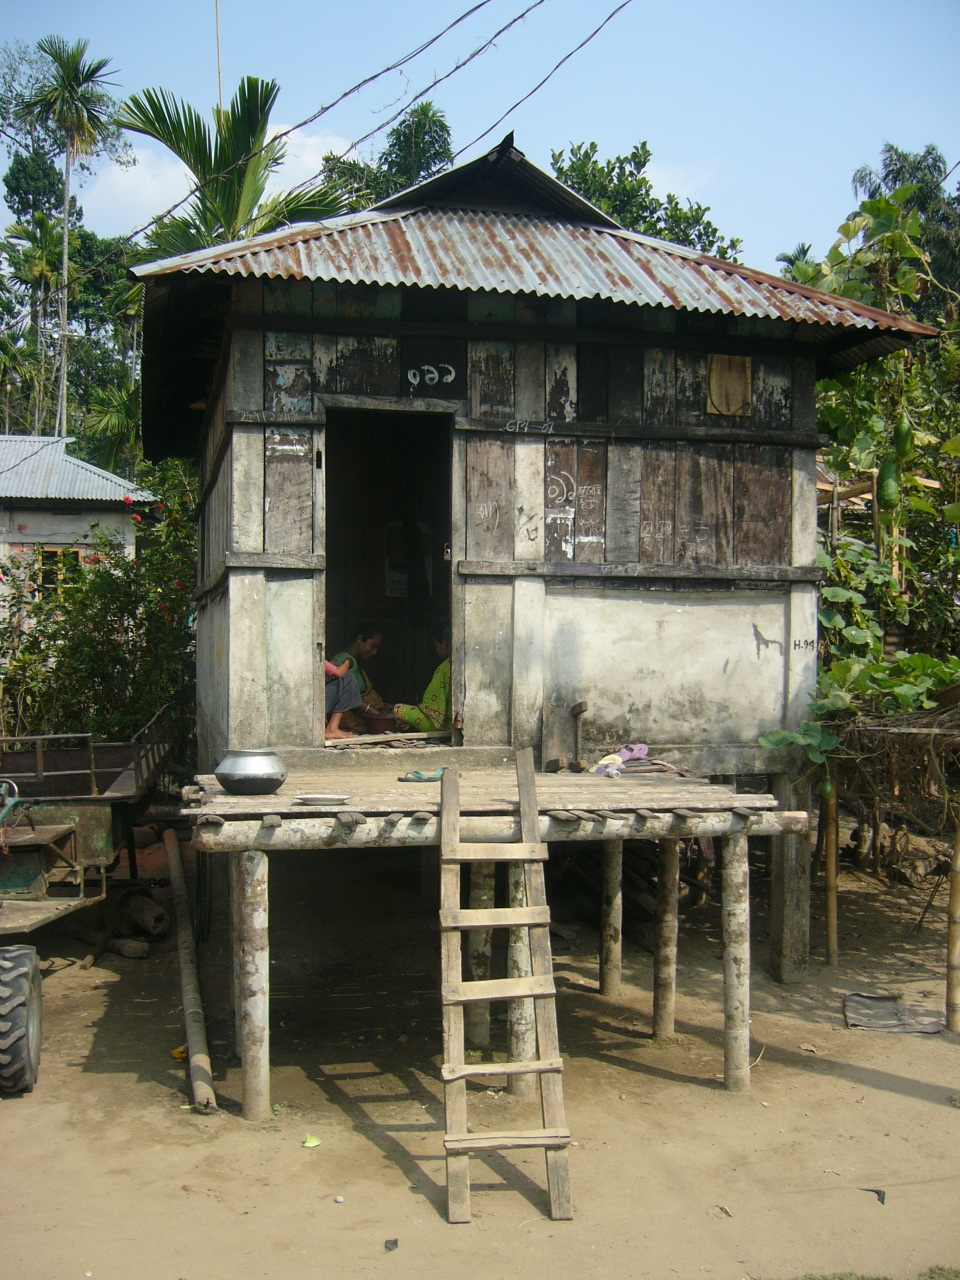 file house of khasia tribe in jaflong sylhet bangladesh 06